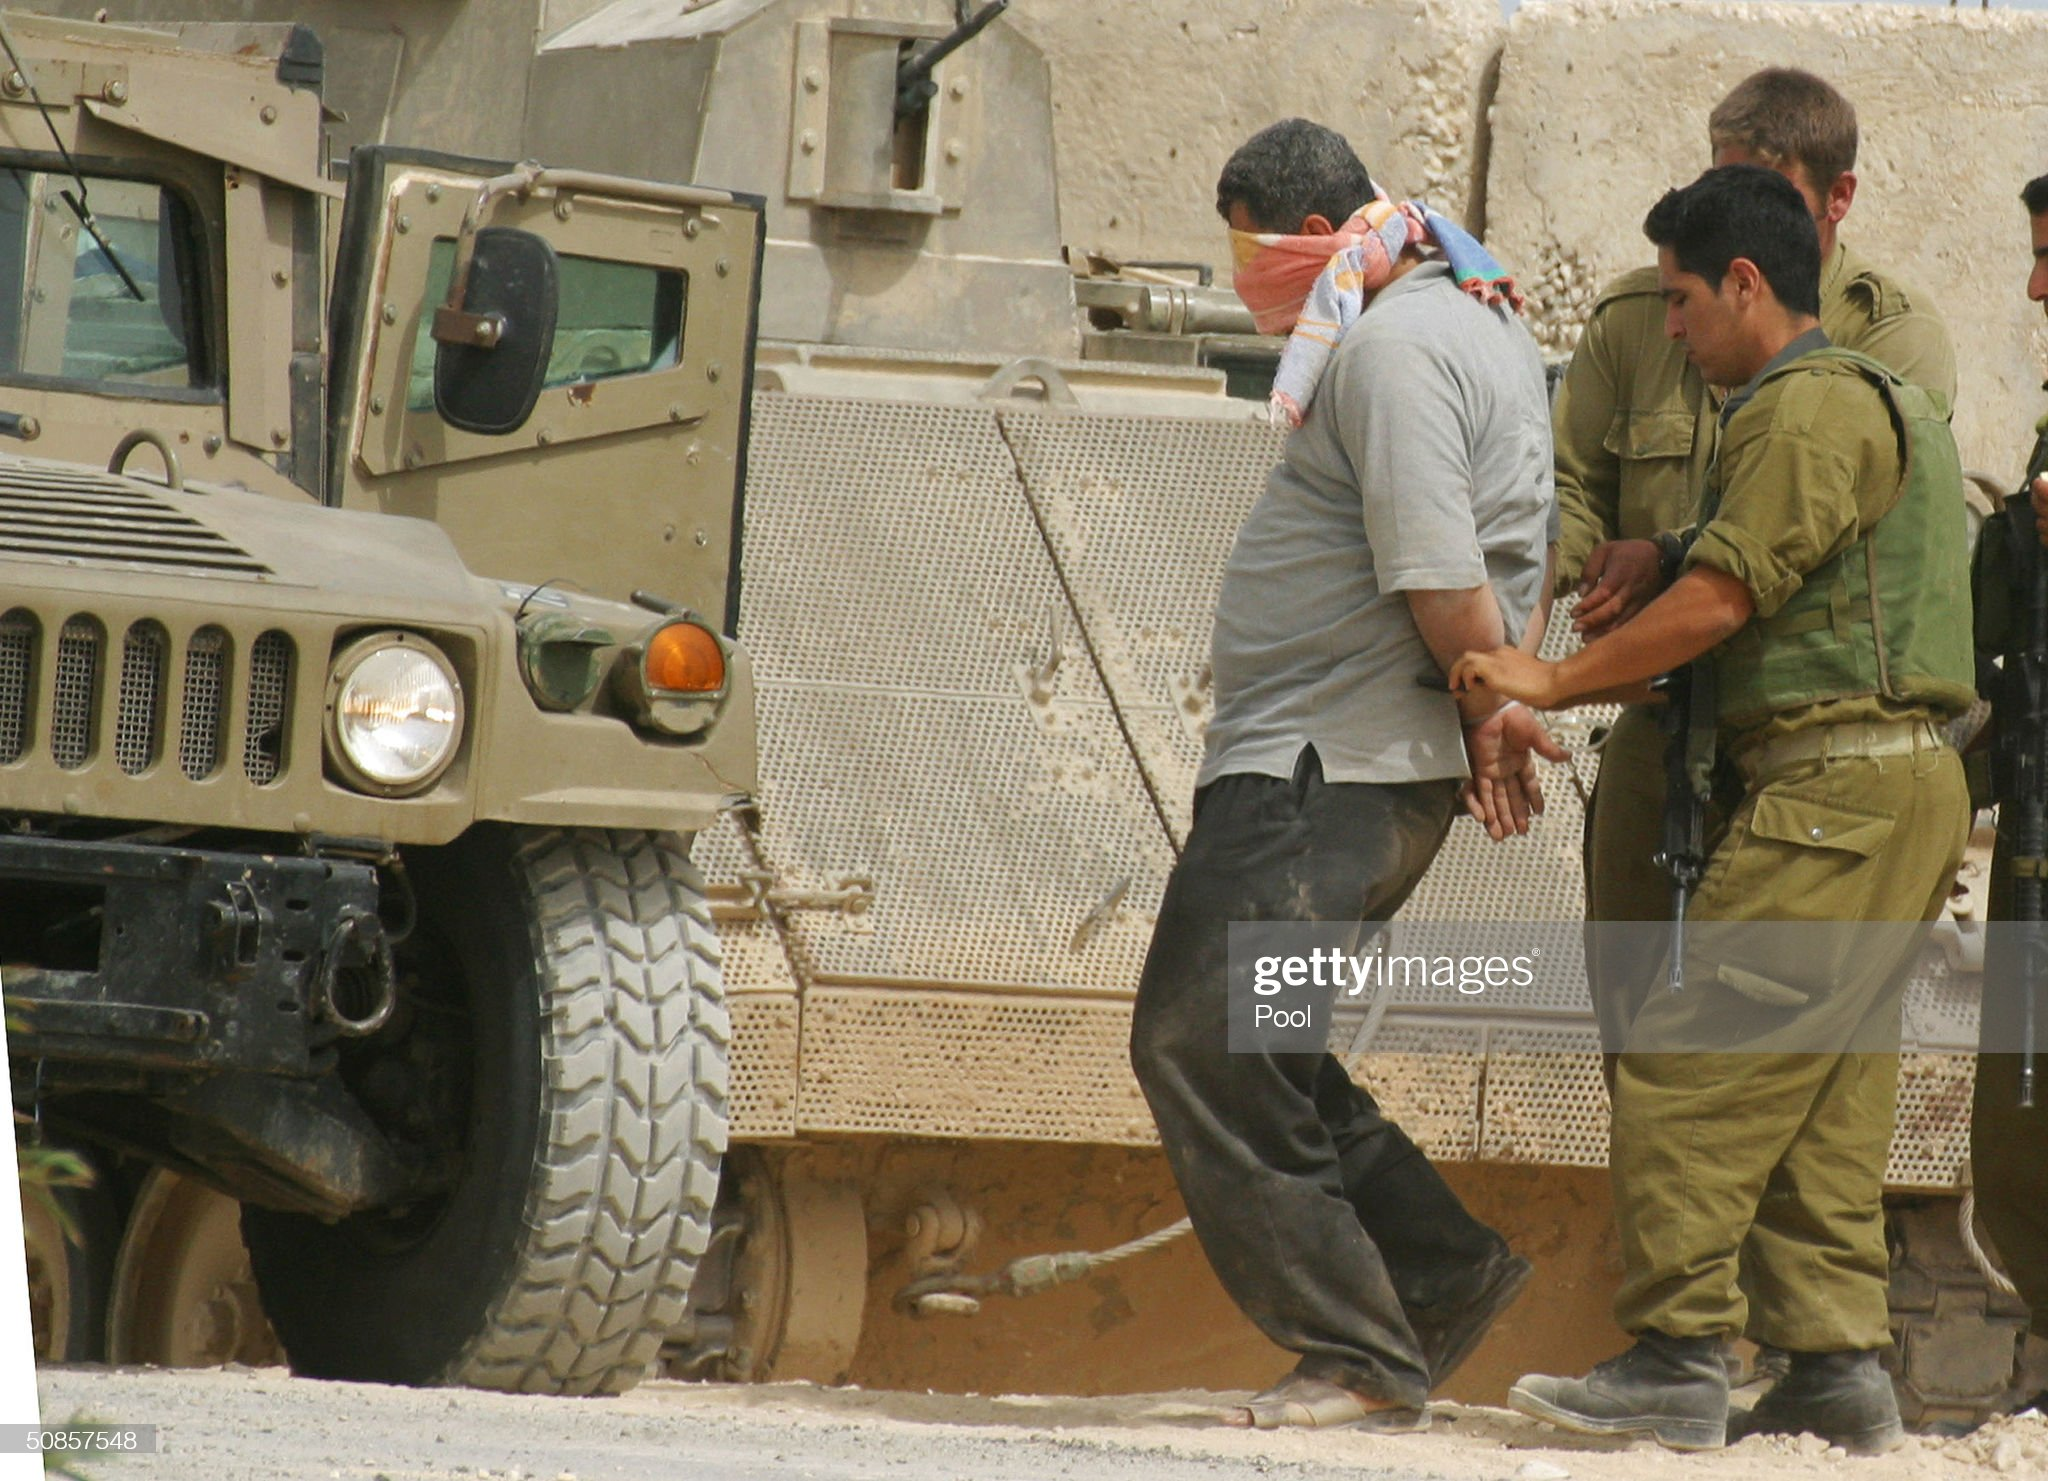 https://media.gettyimages.com/photos/blindfolded-palestinian-is-detained-and-moved-to-an-armored-car-the-picture-id50857548?s=2048x2048